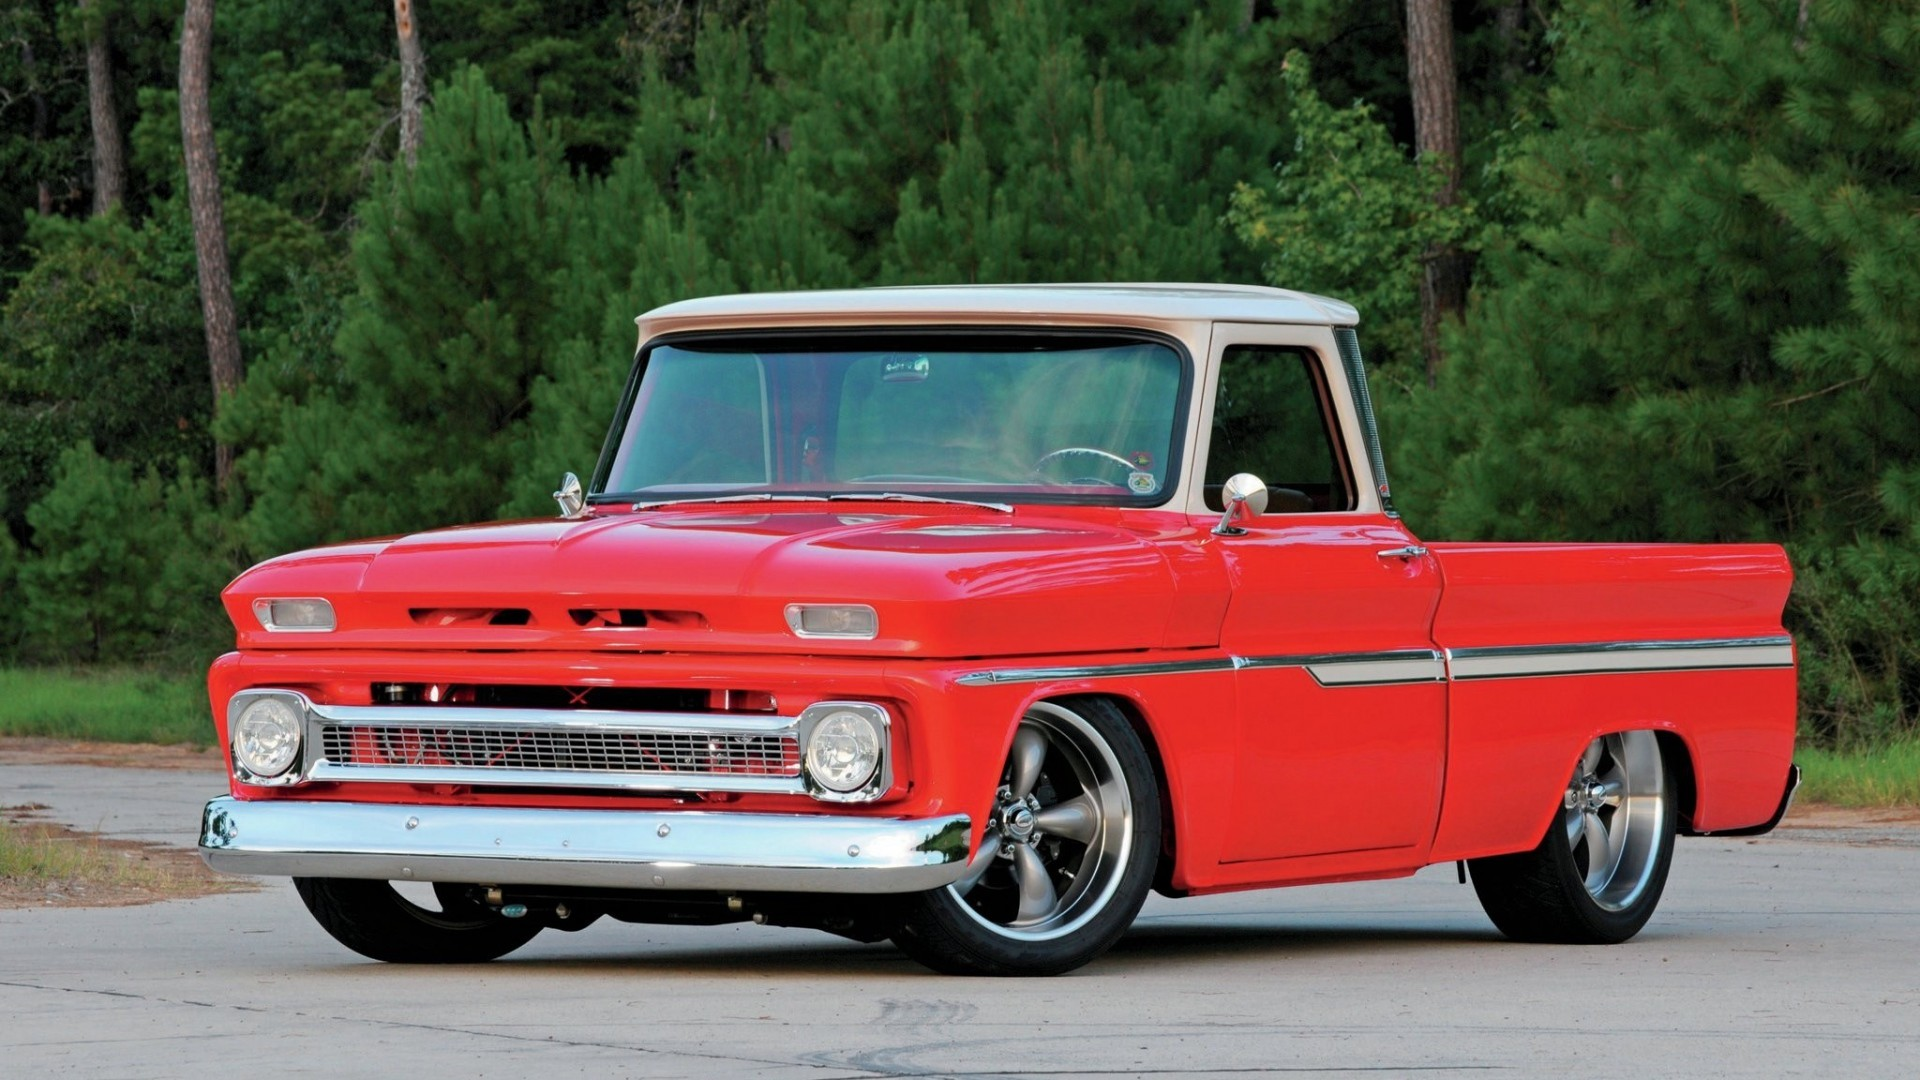 1920x1080 Download now full hd wallpaper chevy c10 forest pickup retro chevrolet usa  ...